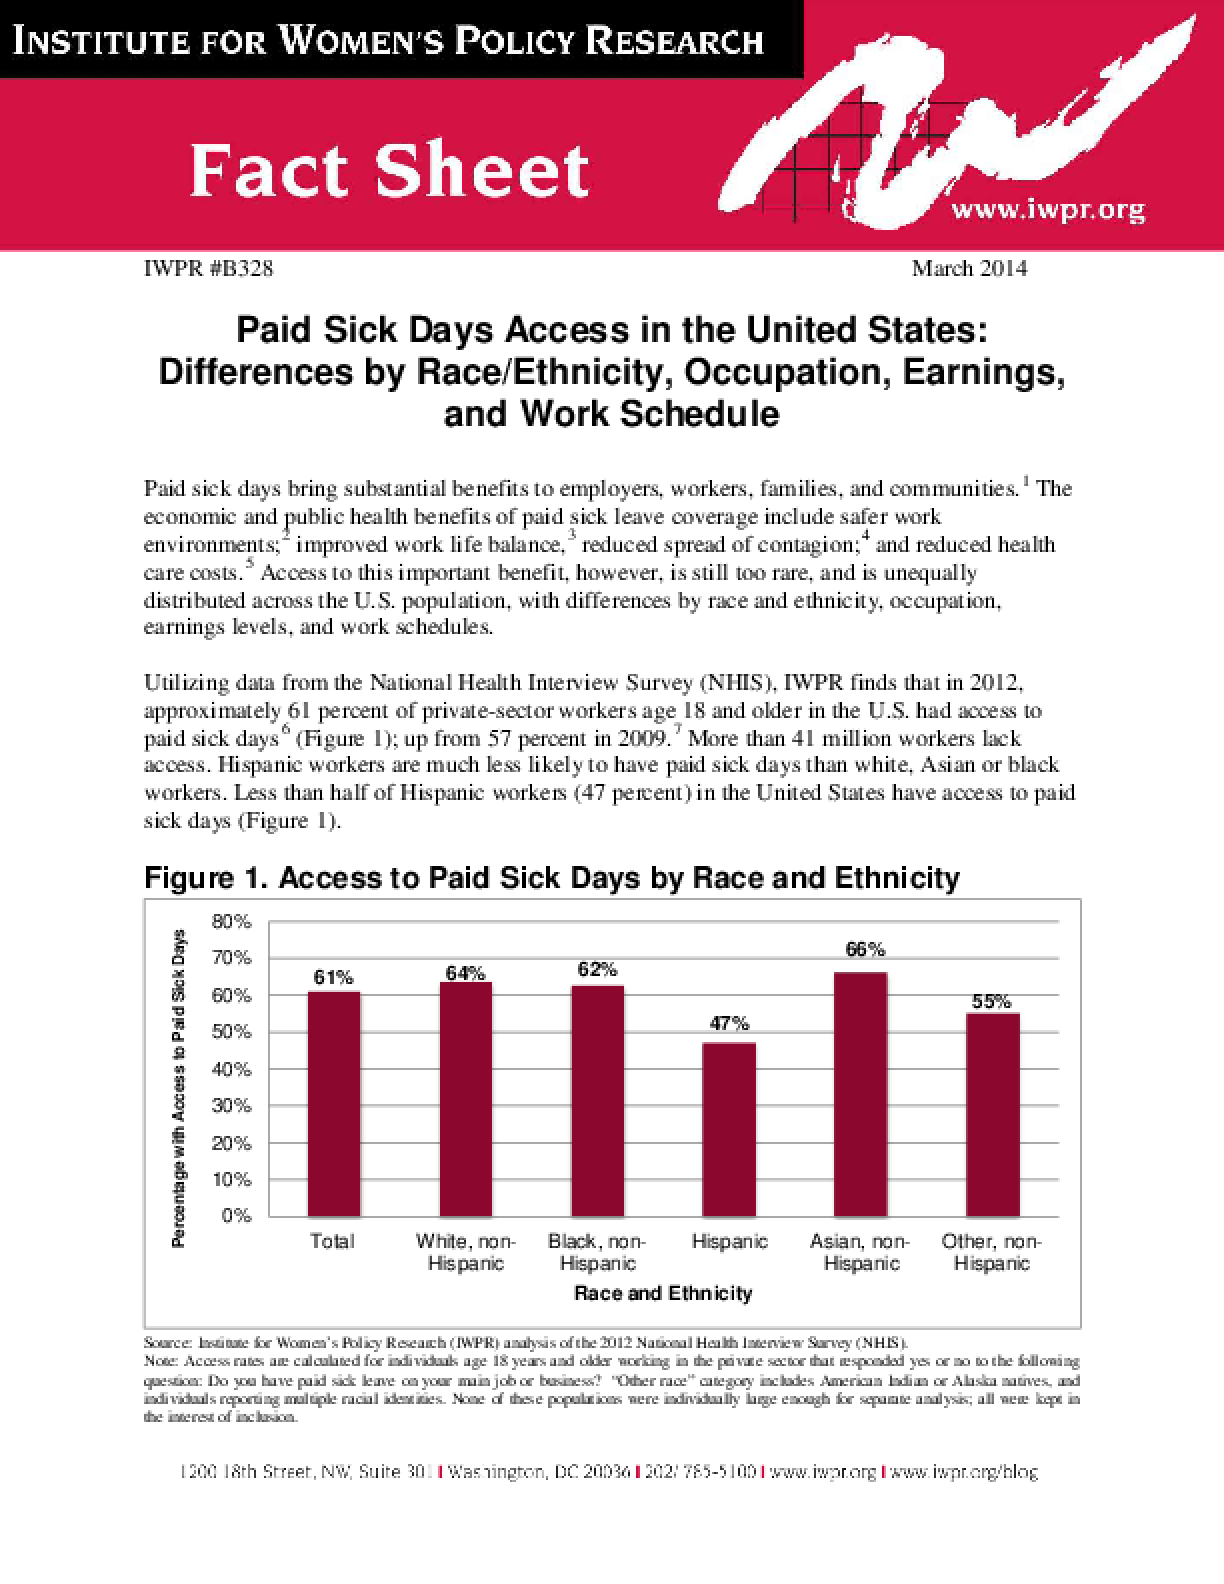 Paid Sick Days Access in the United States: Differences by Race/Ethnicity, Occupation, Earnings, and Work Schedule